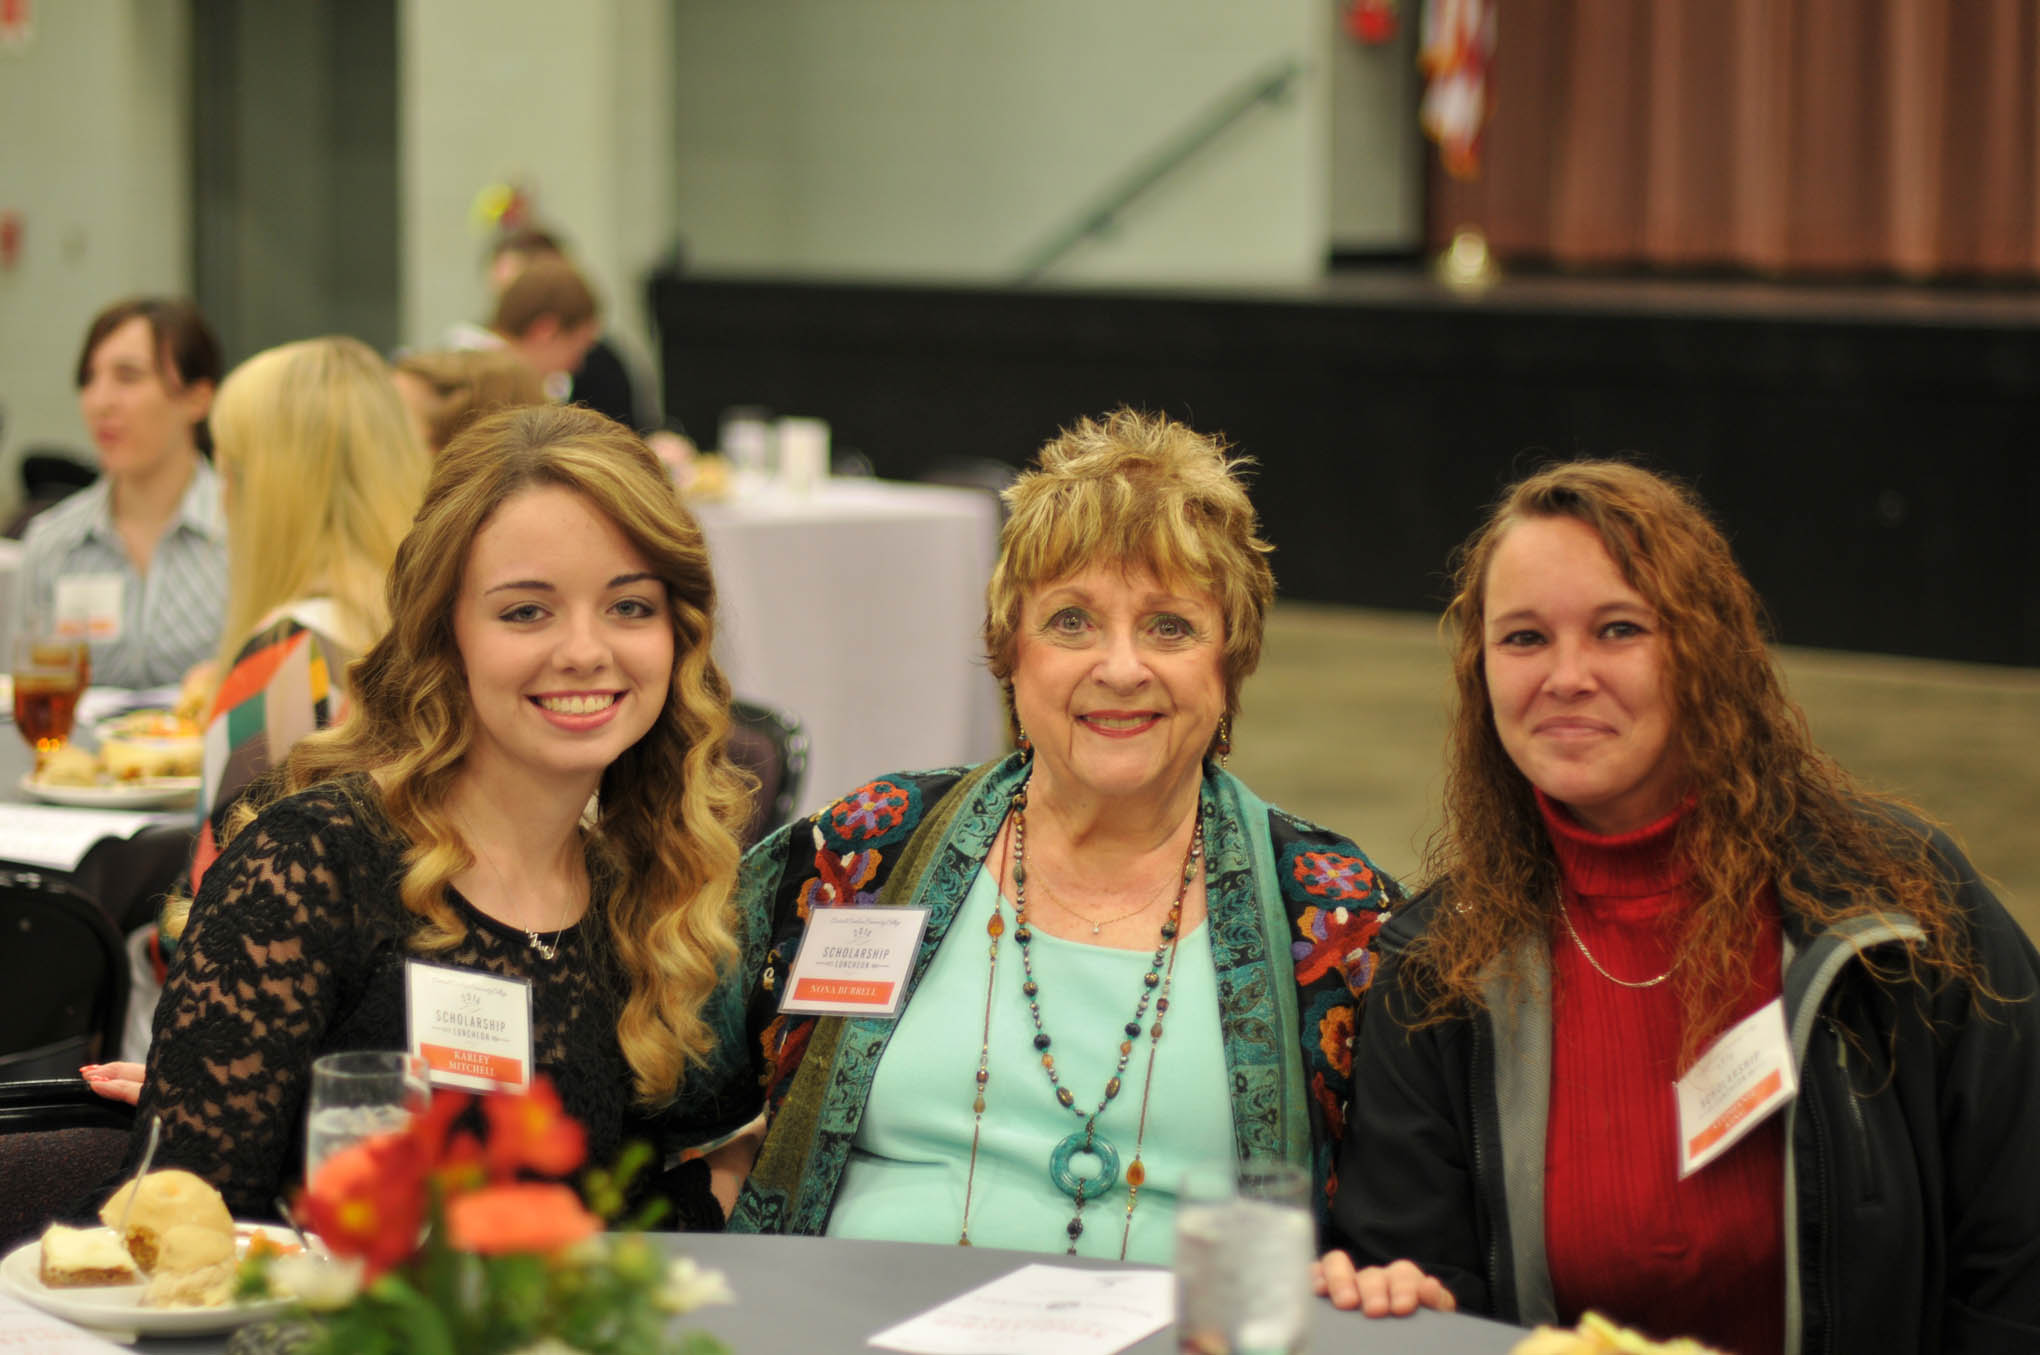 Click to enlarge,  Nona Burrell (center), of Pinehurst, visits with CCCC scholarship recipients Karley Mitchell (left) and Stephanie King (right) during Central Carolina Community College's Scholarship Luncheon on Wednesday, Nov. 16, at the Dennis A. Wicker Civic Center. Burrell was in attendance to represent the Nona Burrell/Nomar's Kennel Scholarships, as well as the Moore County Kennel Club Veterinary Medicine Technology Scholarships.